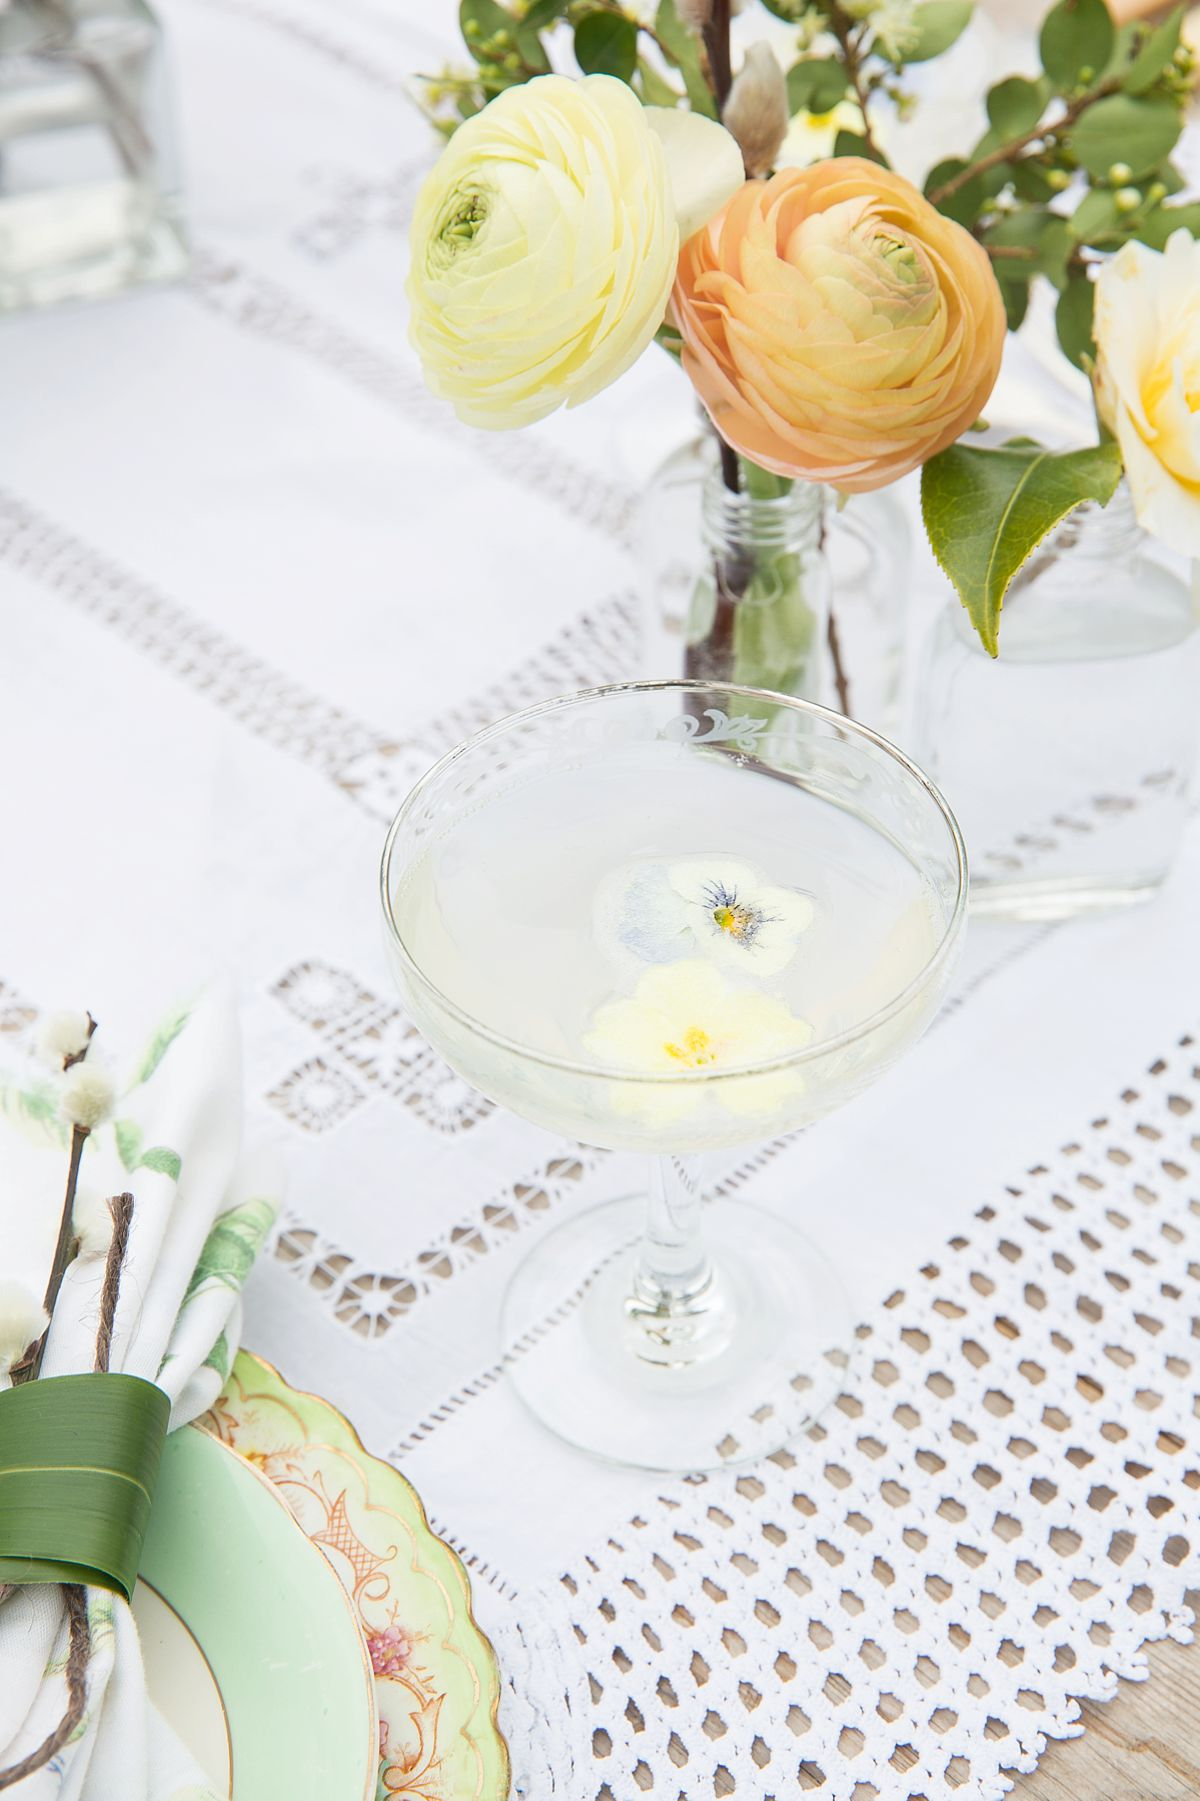 Champagne with floating edible flowers